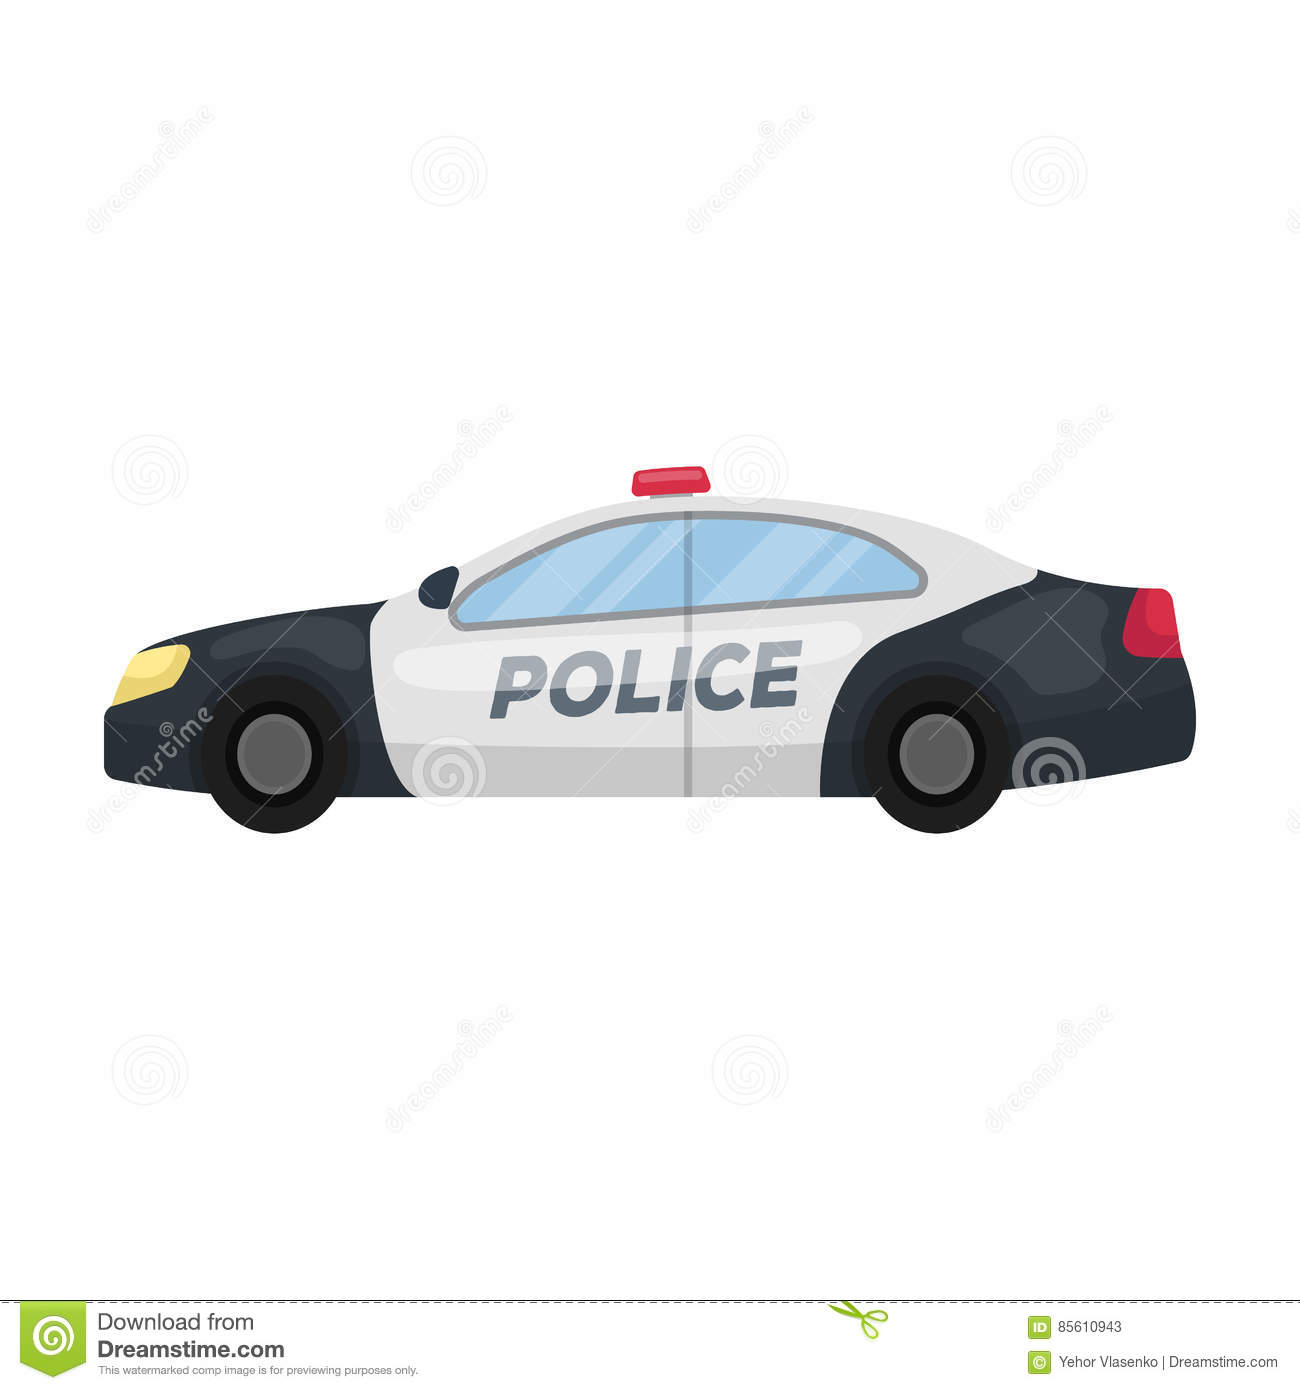 police car icon in cartoon style isolated on white